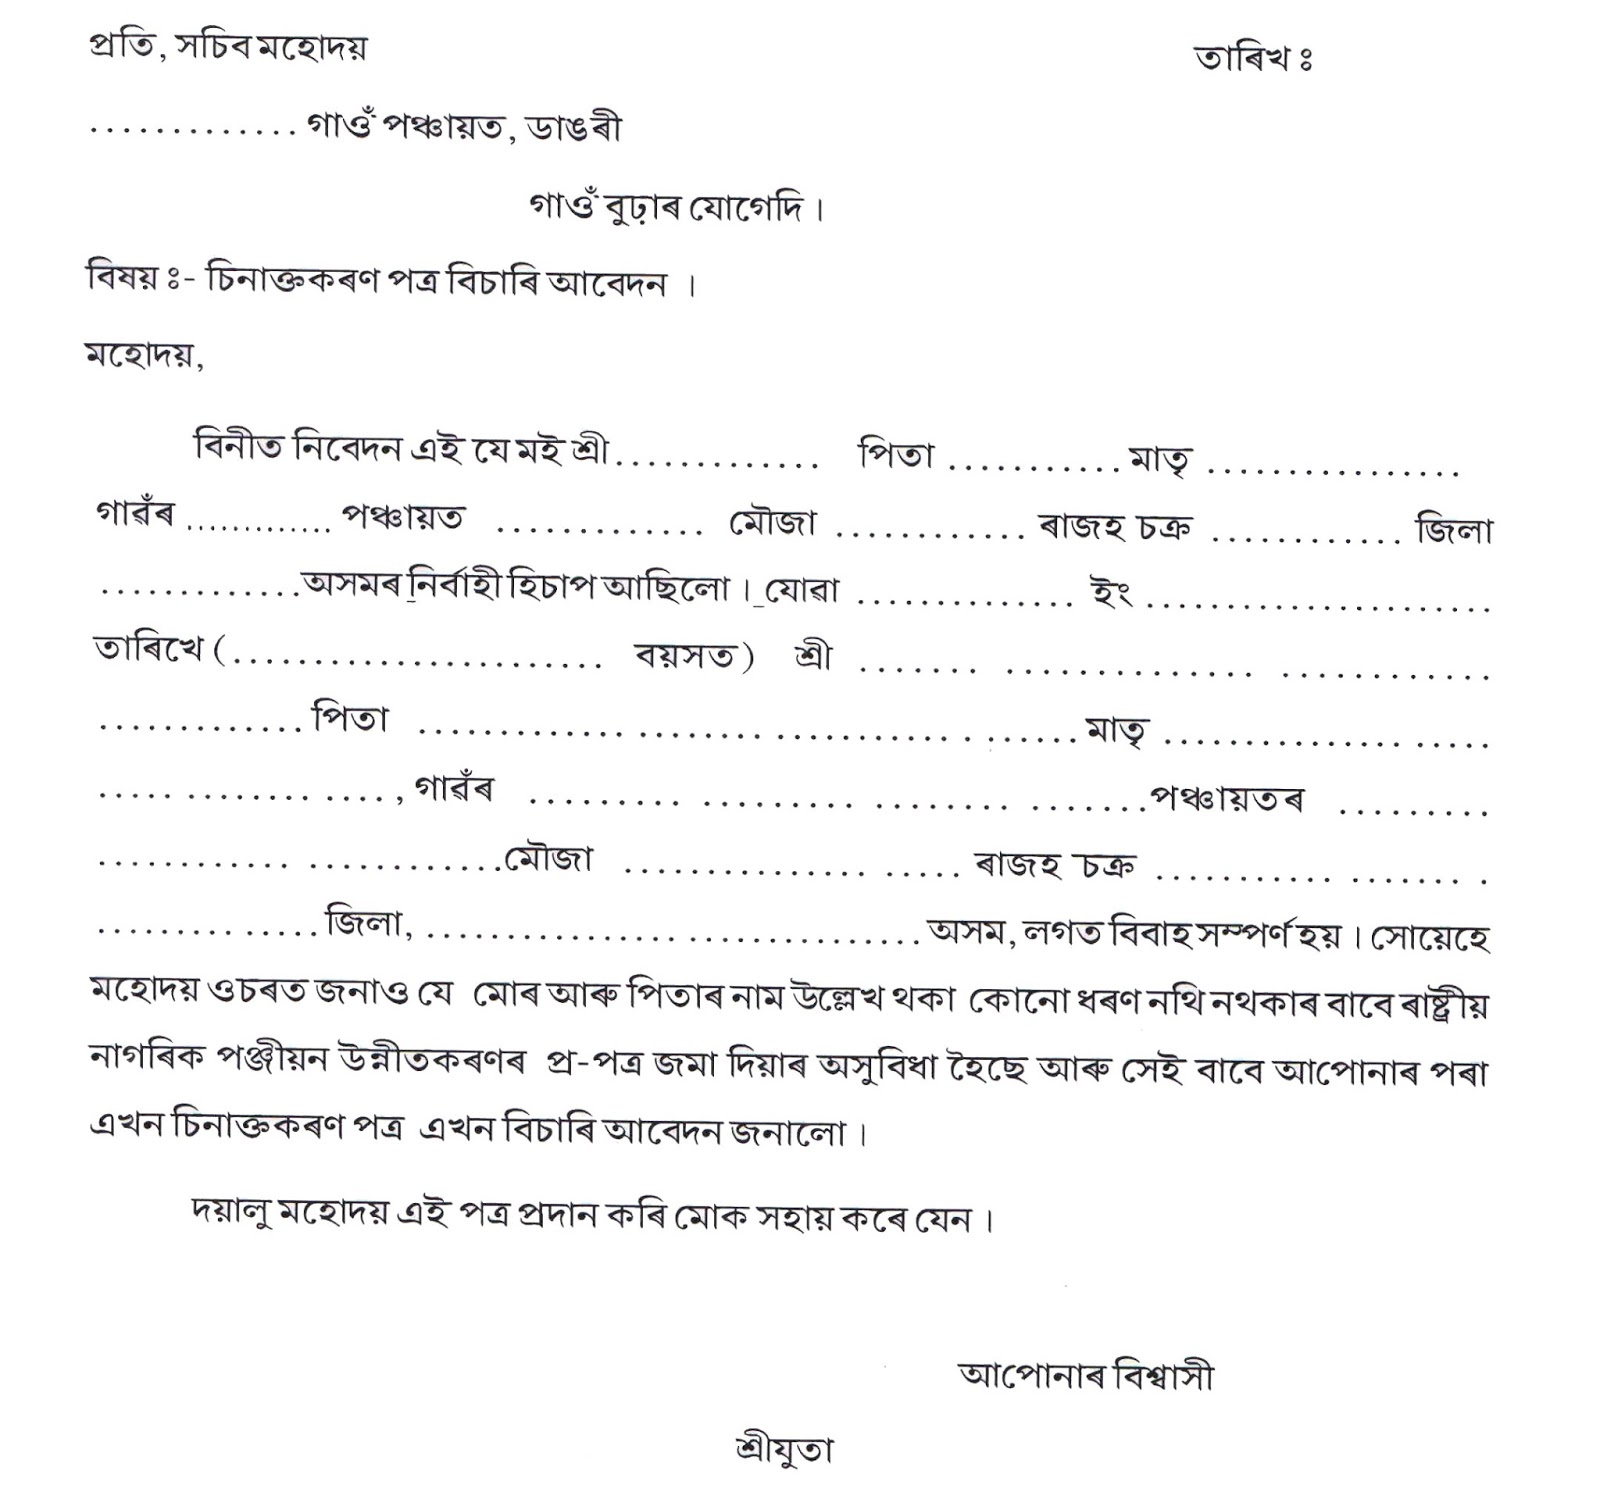 Application for resident certificate from gaon panchayat assamese application for resident certificate from gaon panchayat assamese format thecheapjerseys Image collections